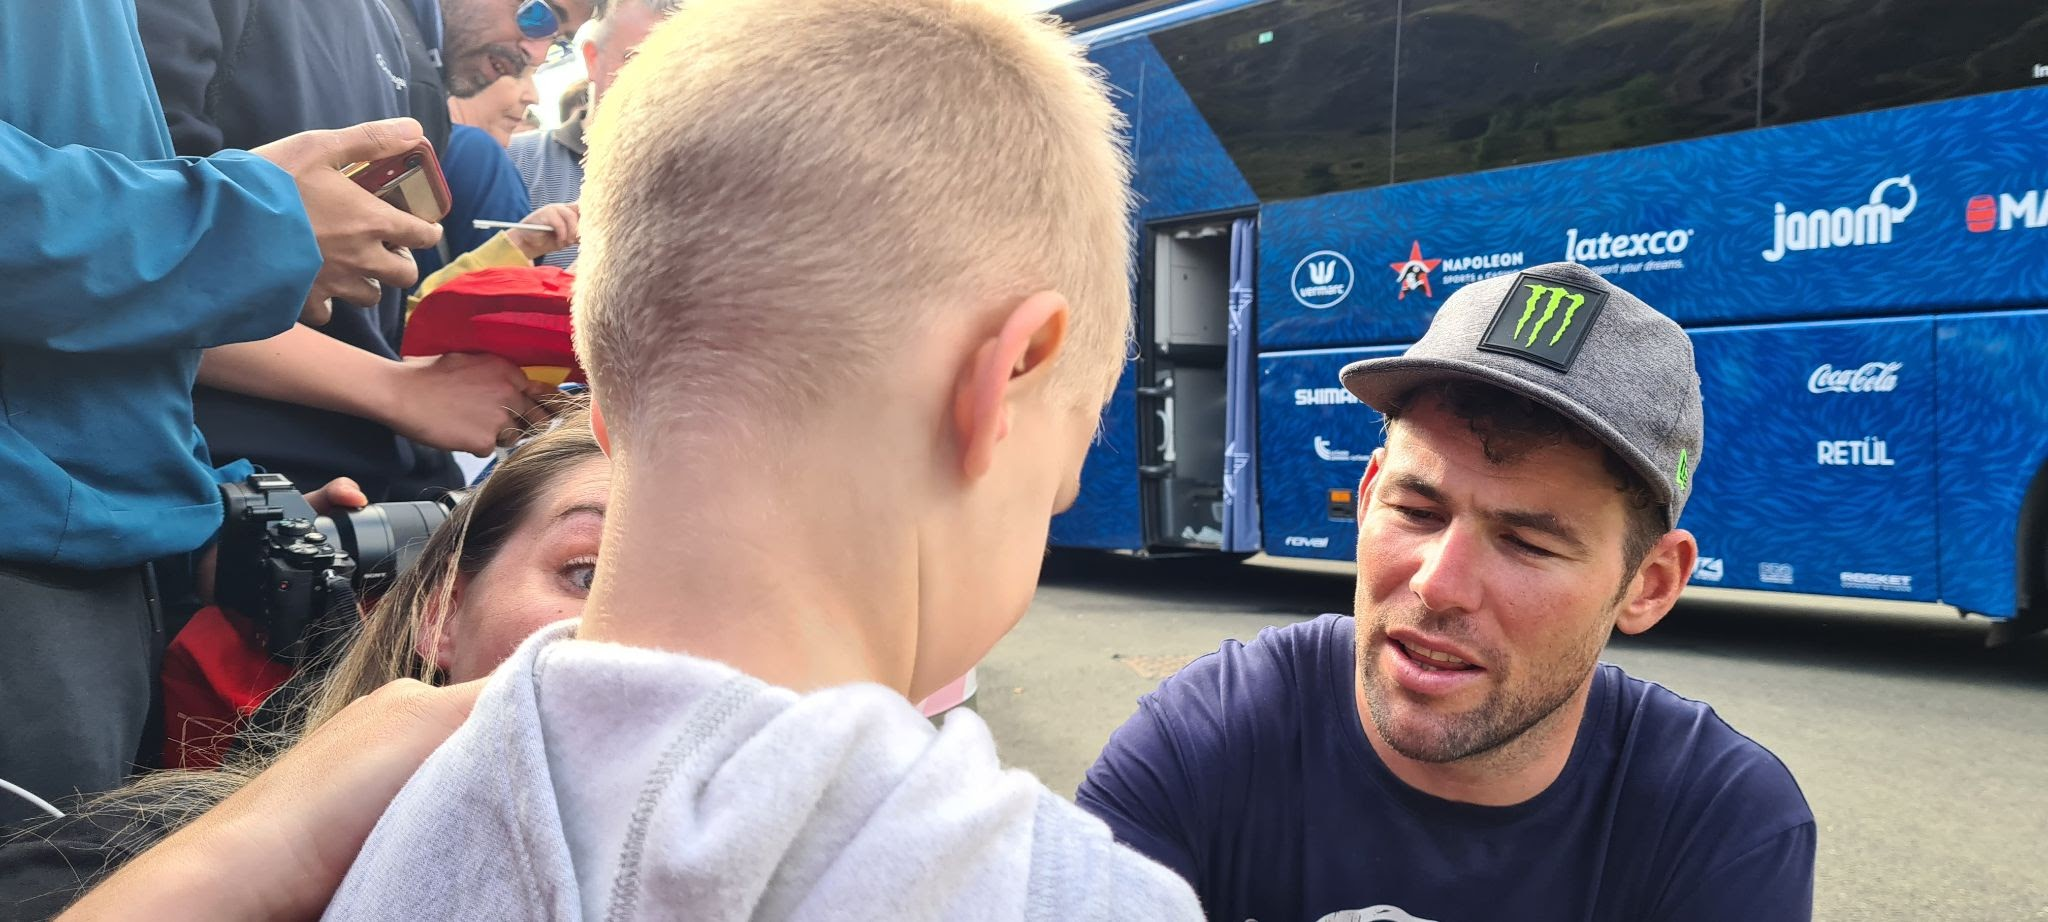 Mark Cavendish signs autograph for young boy